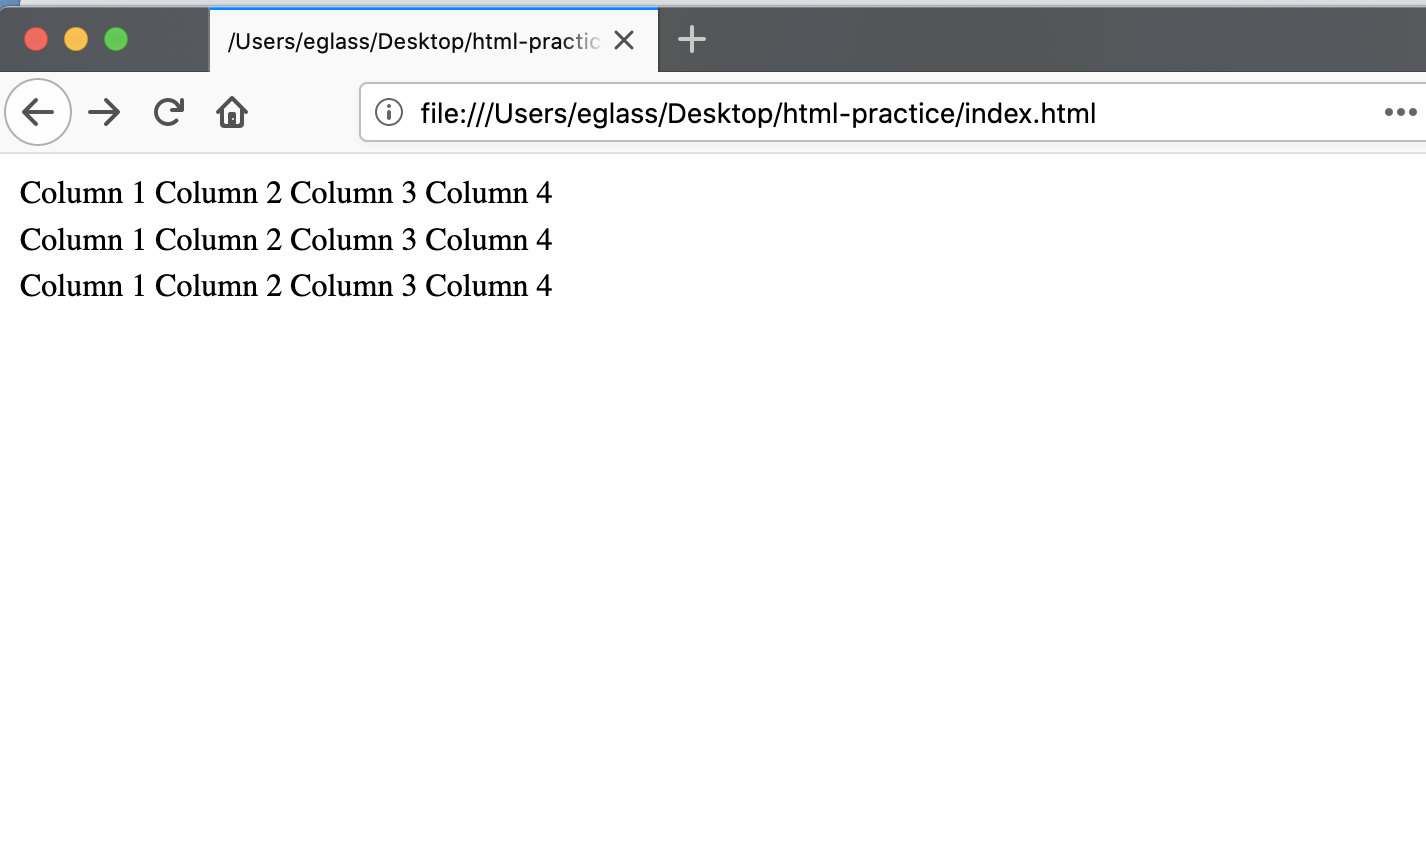 Webpage displaying table with three rows and four columns